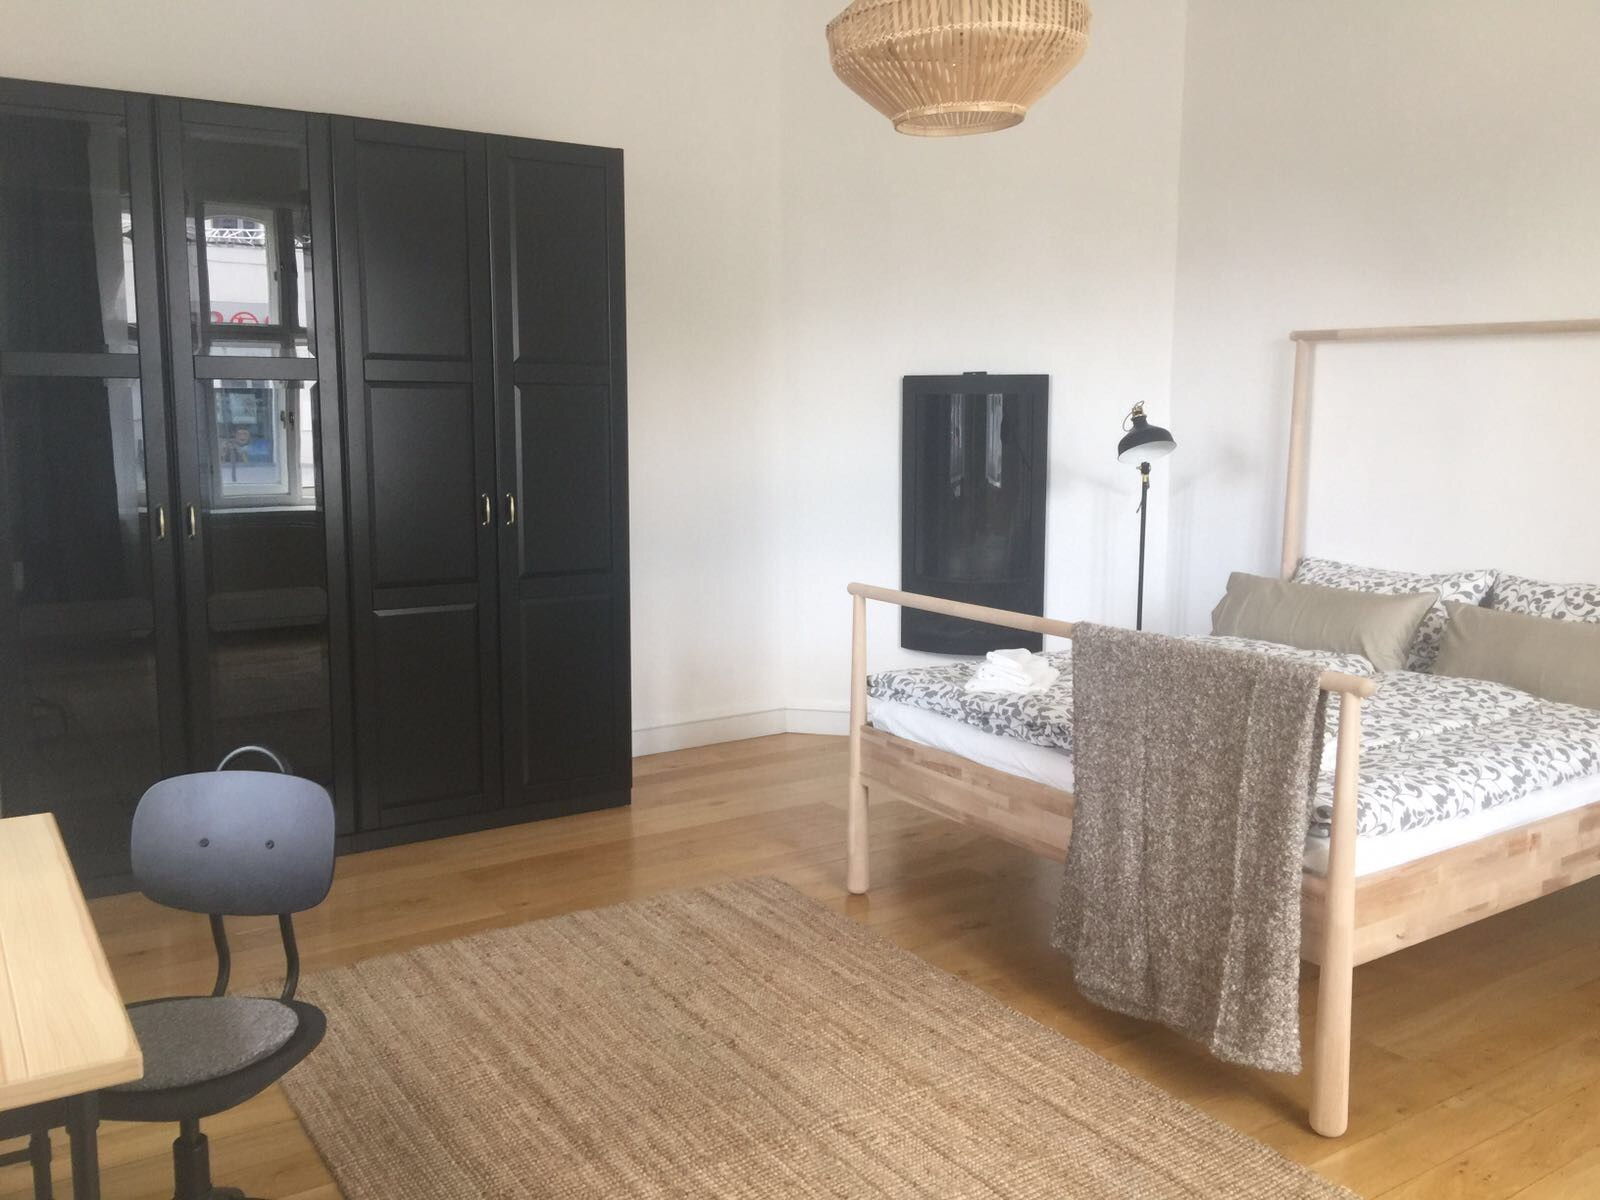 very-large-room-newly-furnished-apartment-central-munich-297e73f3b05ddb08f502fea96347f8f9